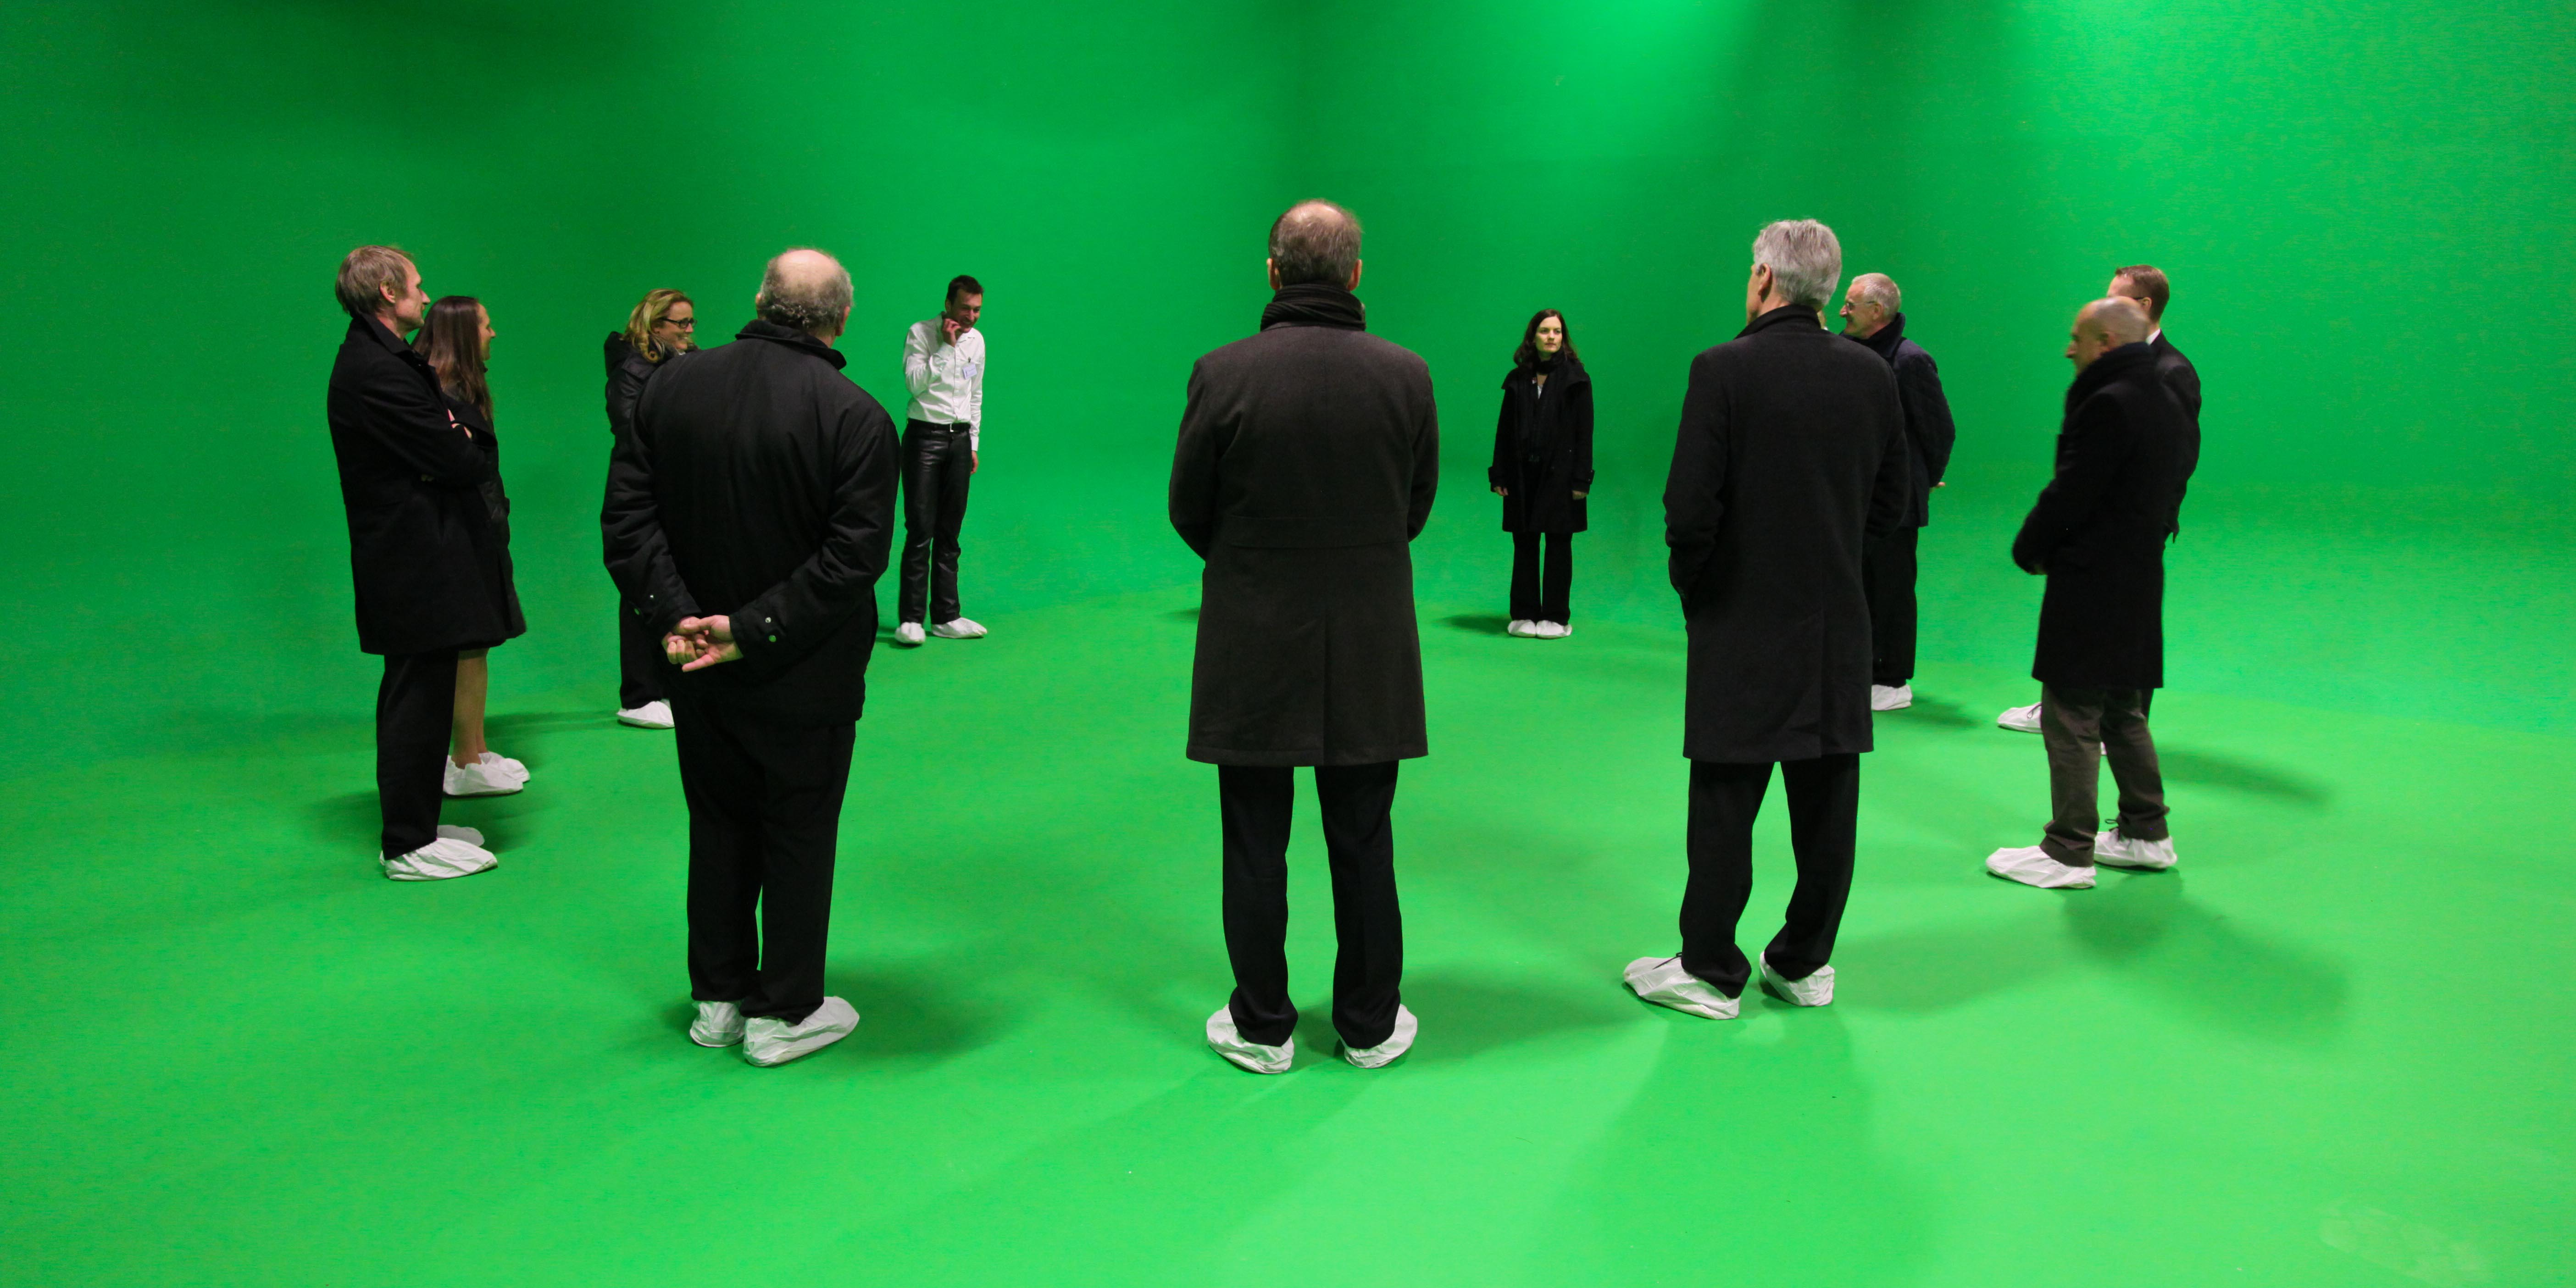 6 Workshop im Greenscreen Studio